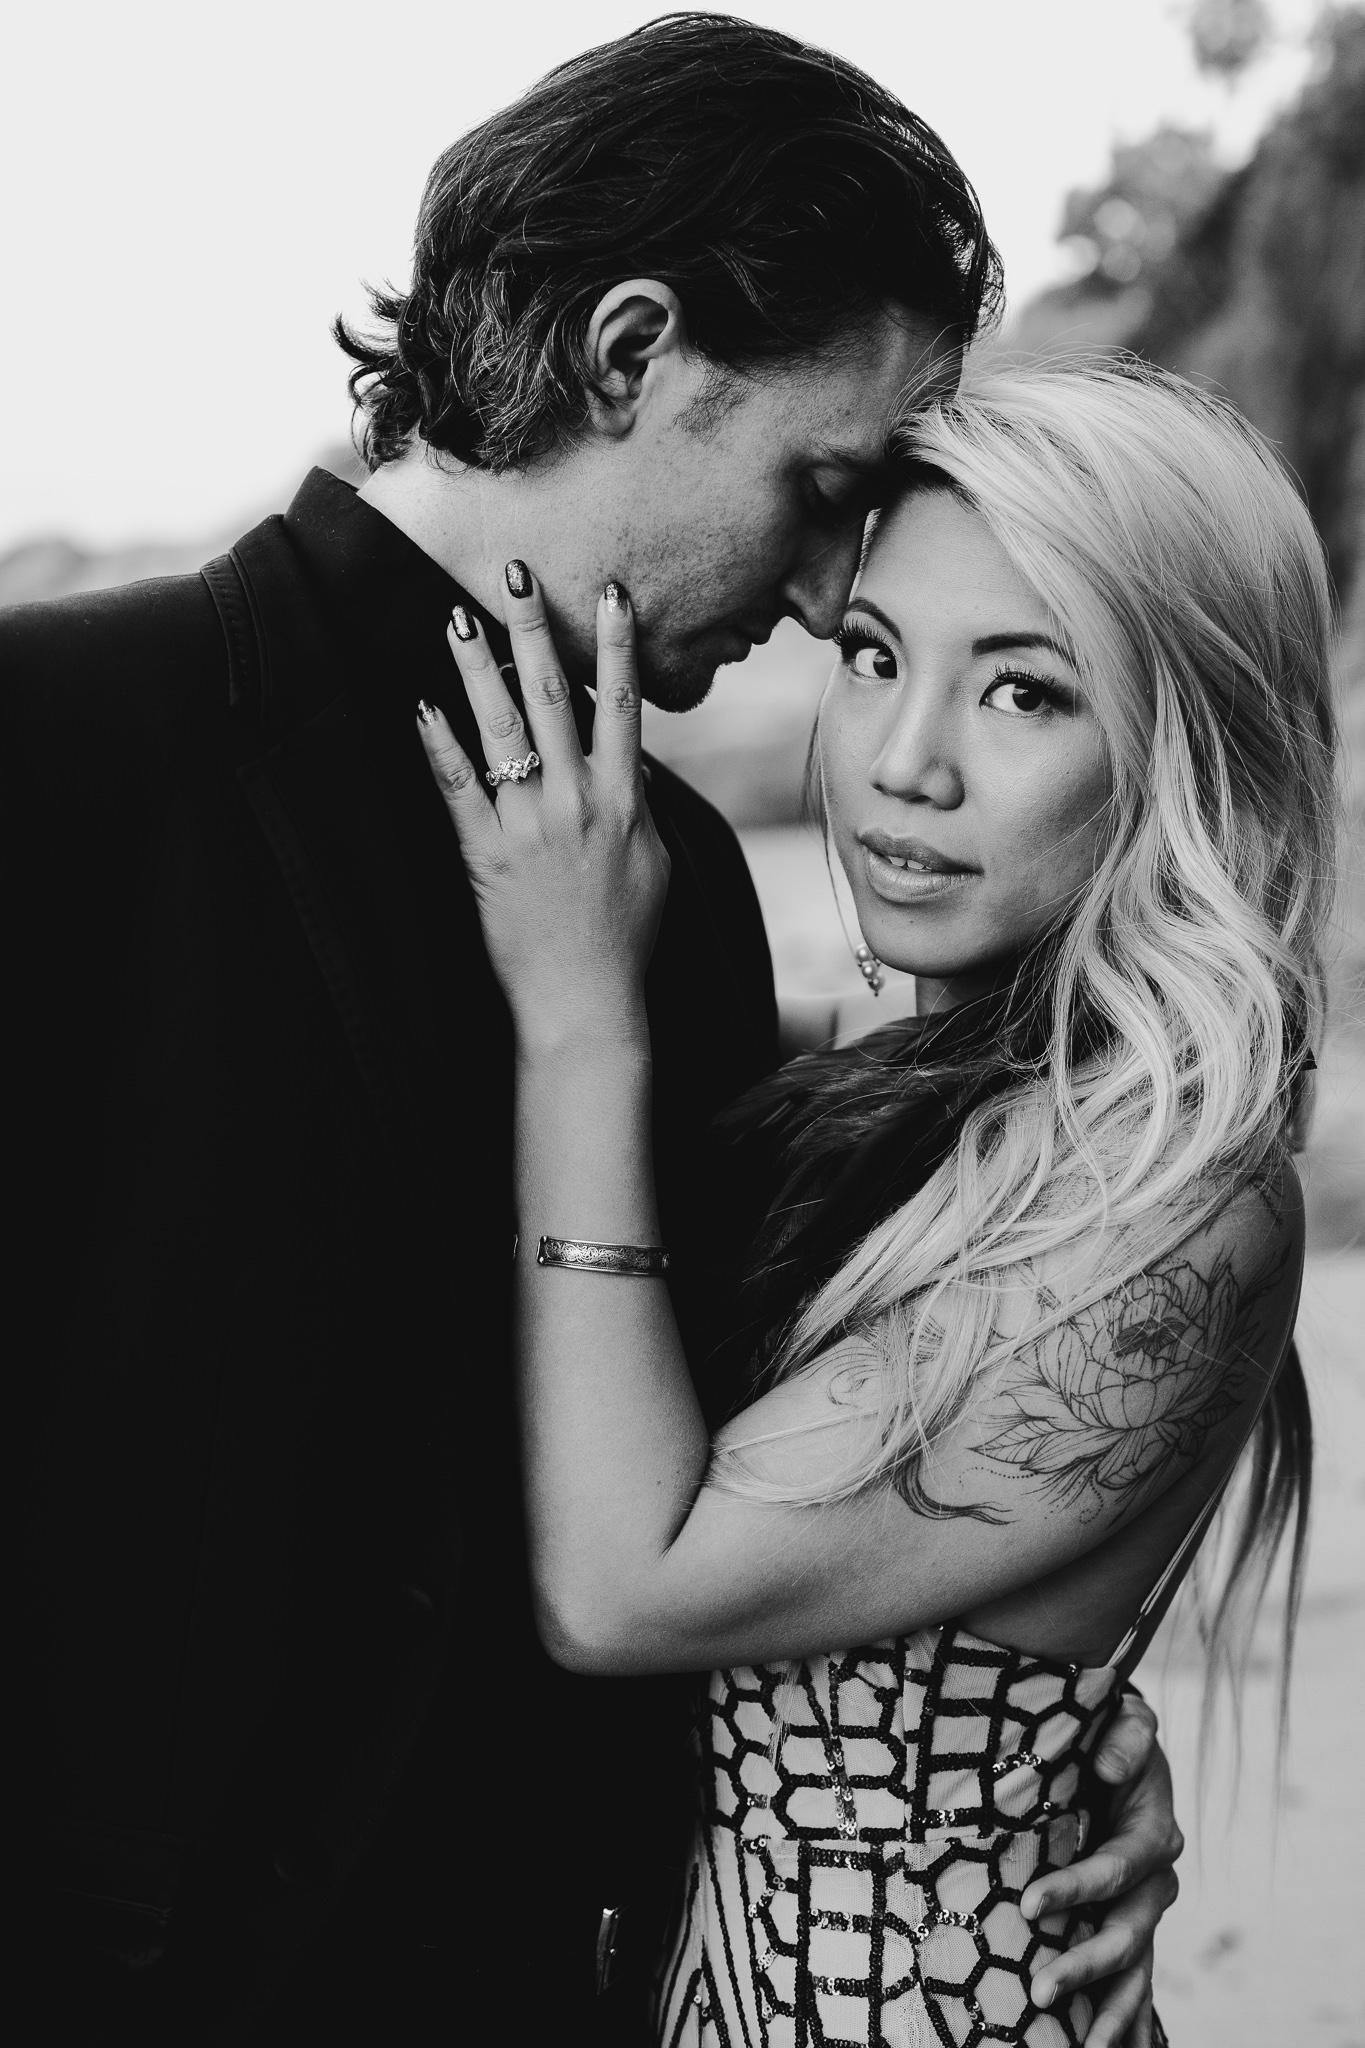 Archer Inspired Photography Amy and Kyle Wedding Engagement Session Long Beach Los Angeles California SoCal Best Top Rated Affordable Lifestyle Documentary Natural Light Fun Offbeat Unique Photographer-35.jpg